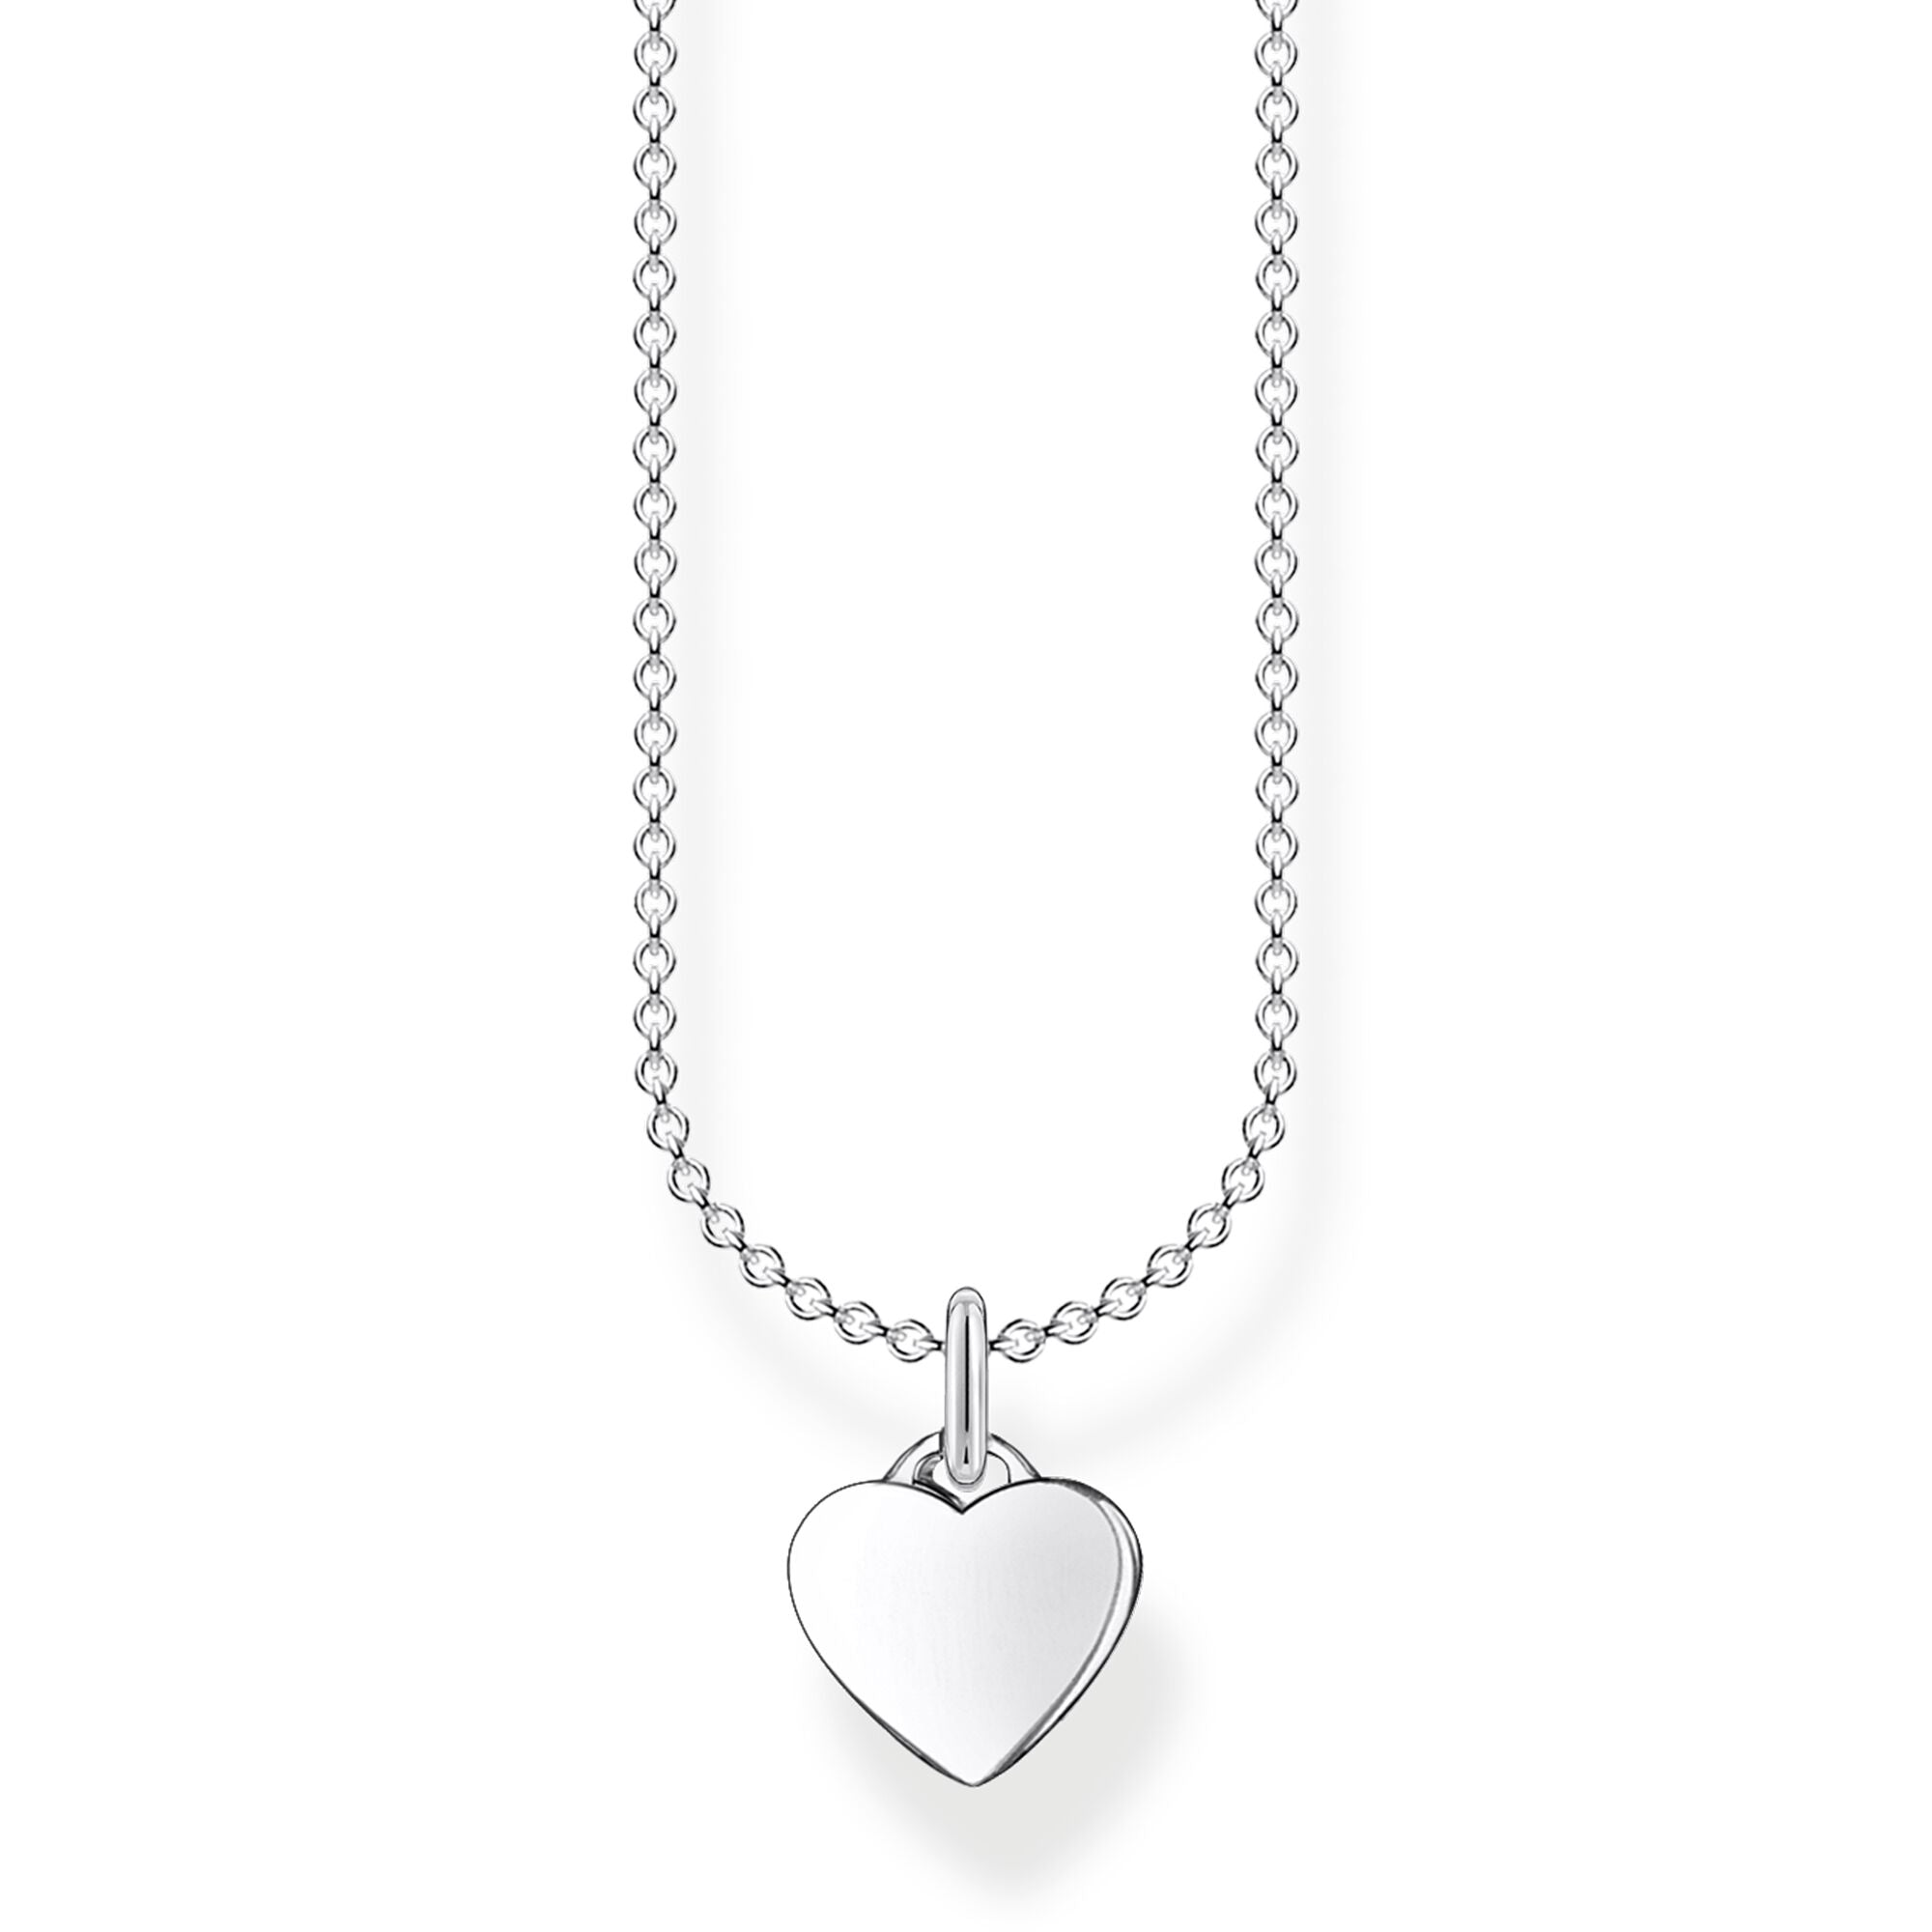 Thomas Sabo Sterling Silver Heart Pendant Necklace